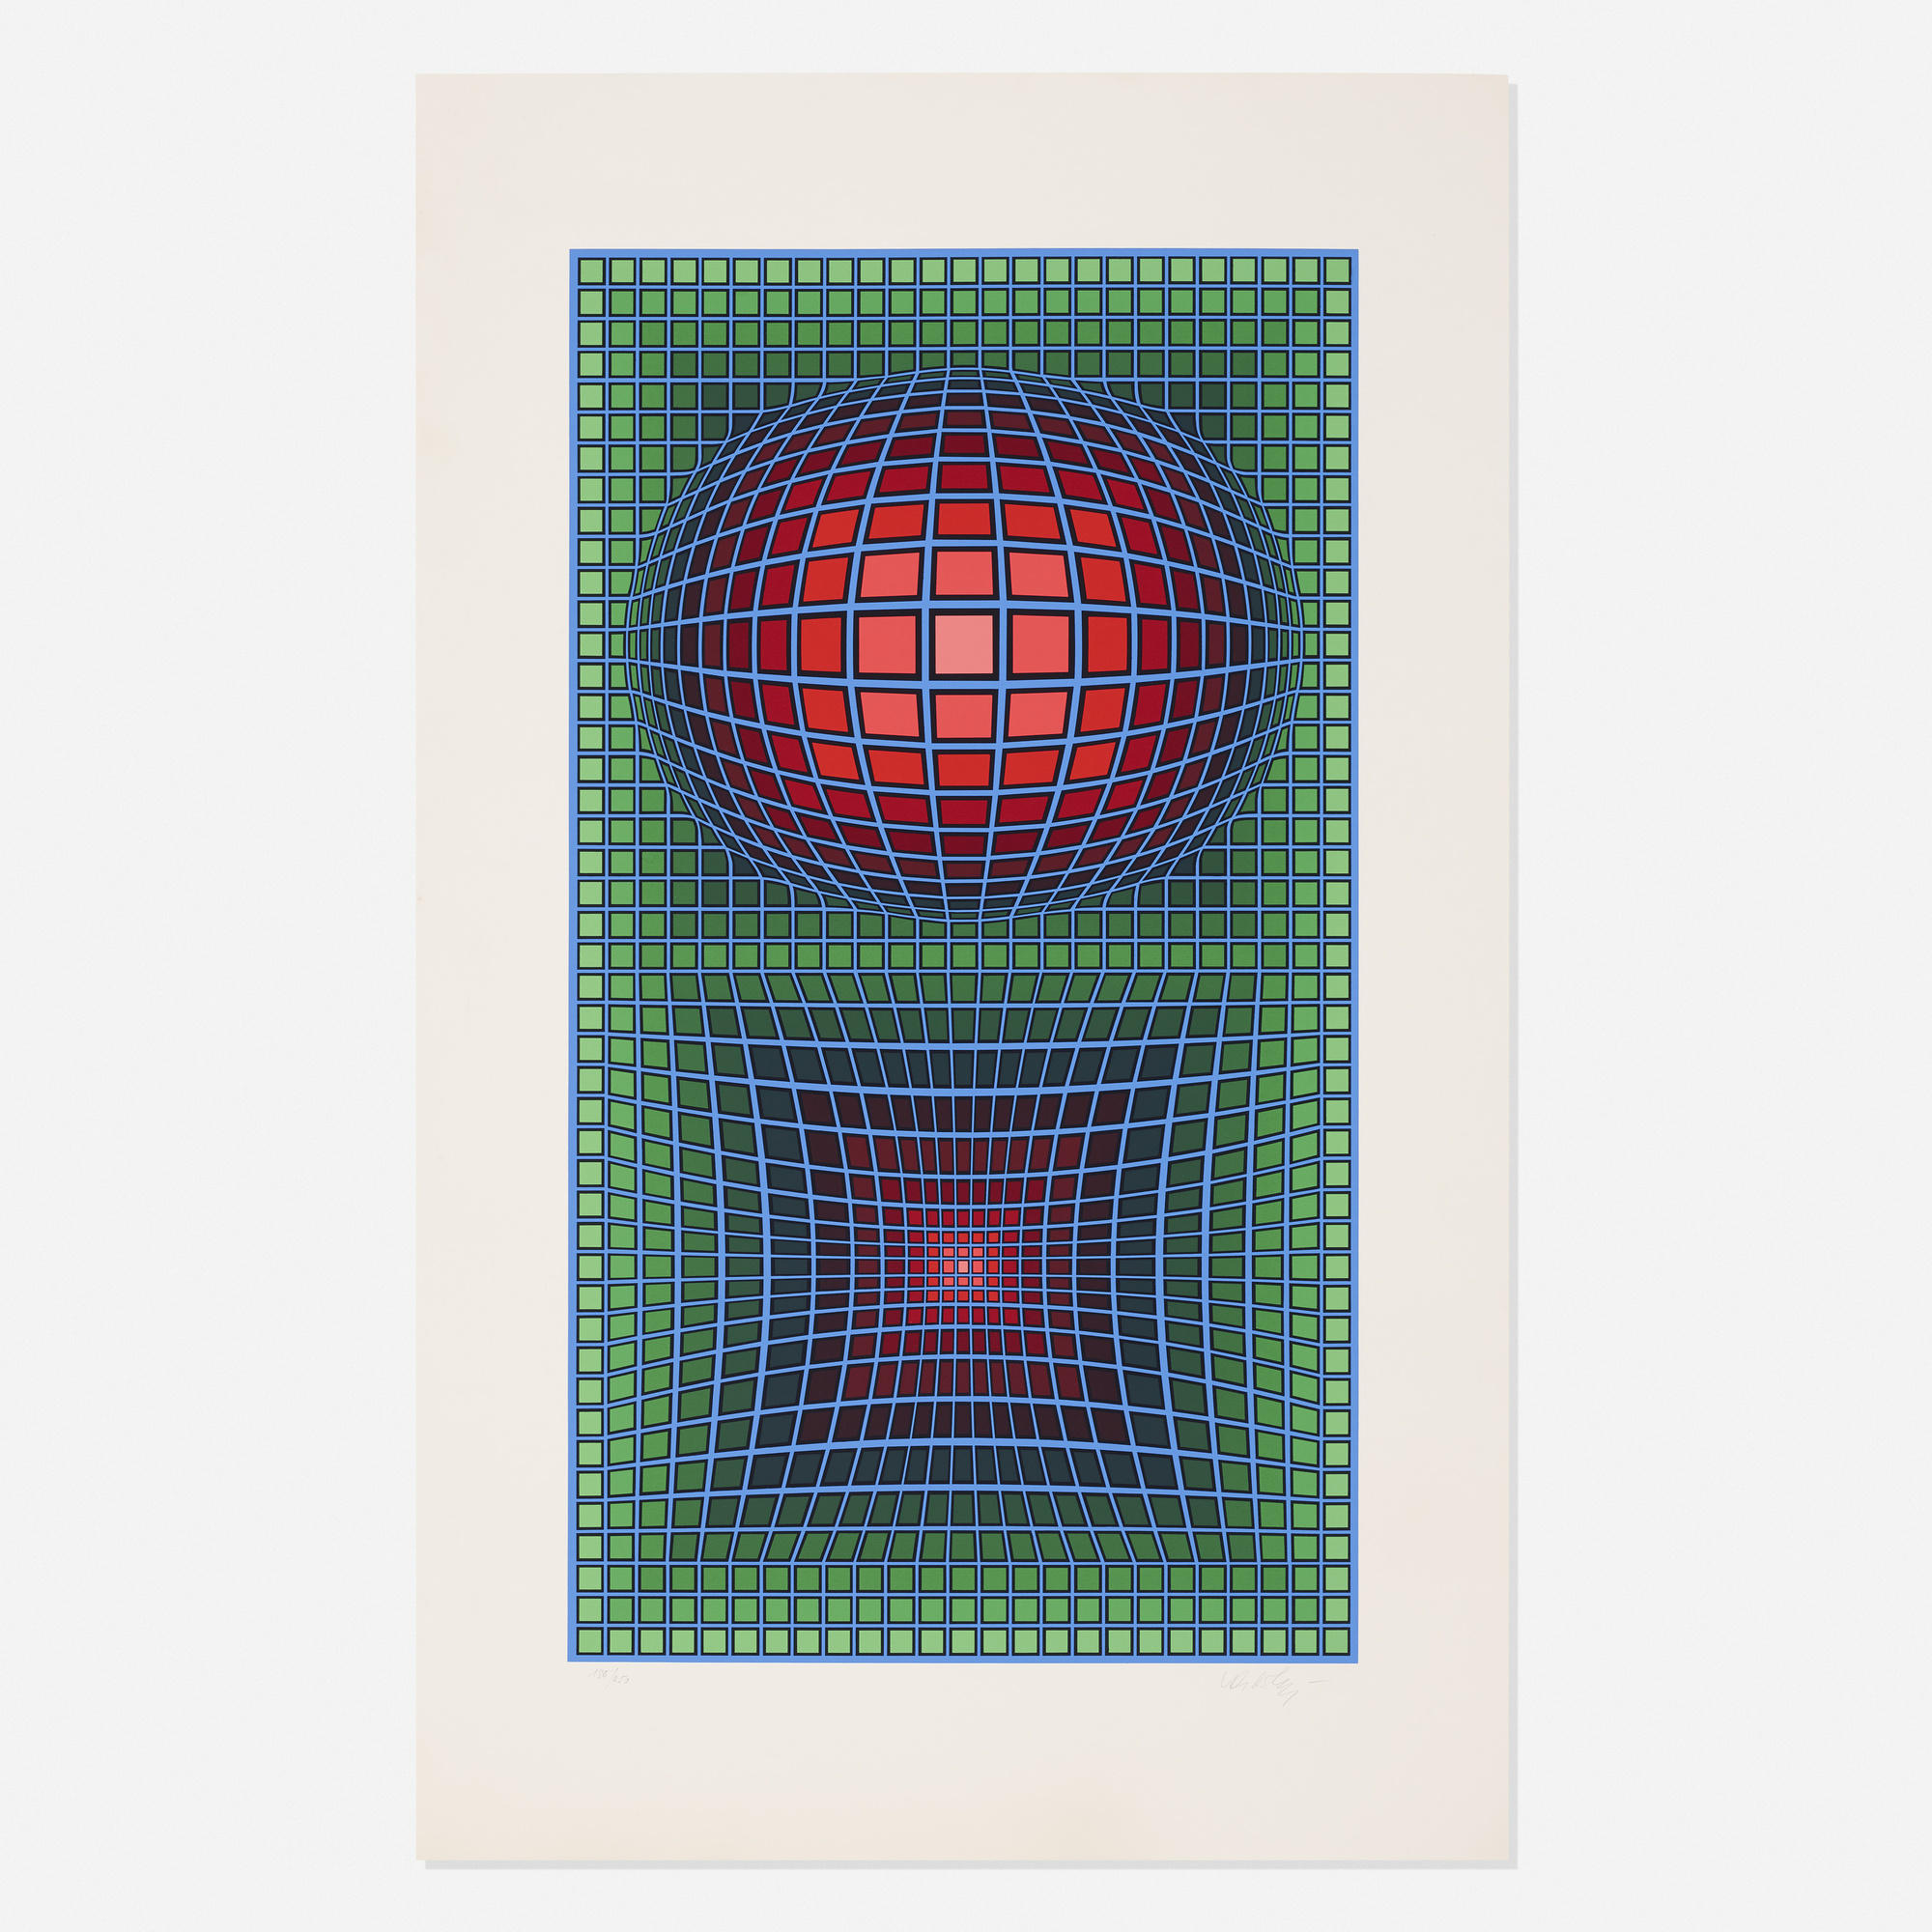 400: Victor Vasarely / Untitled (1 of 1)